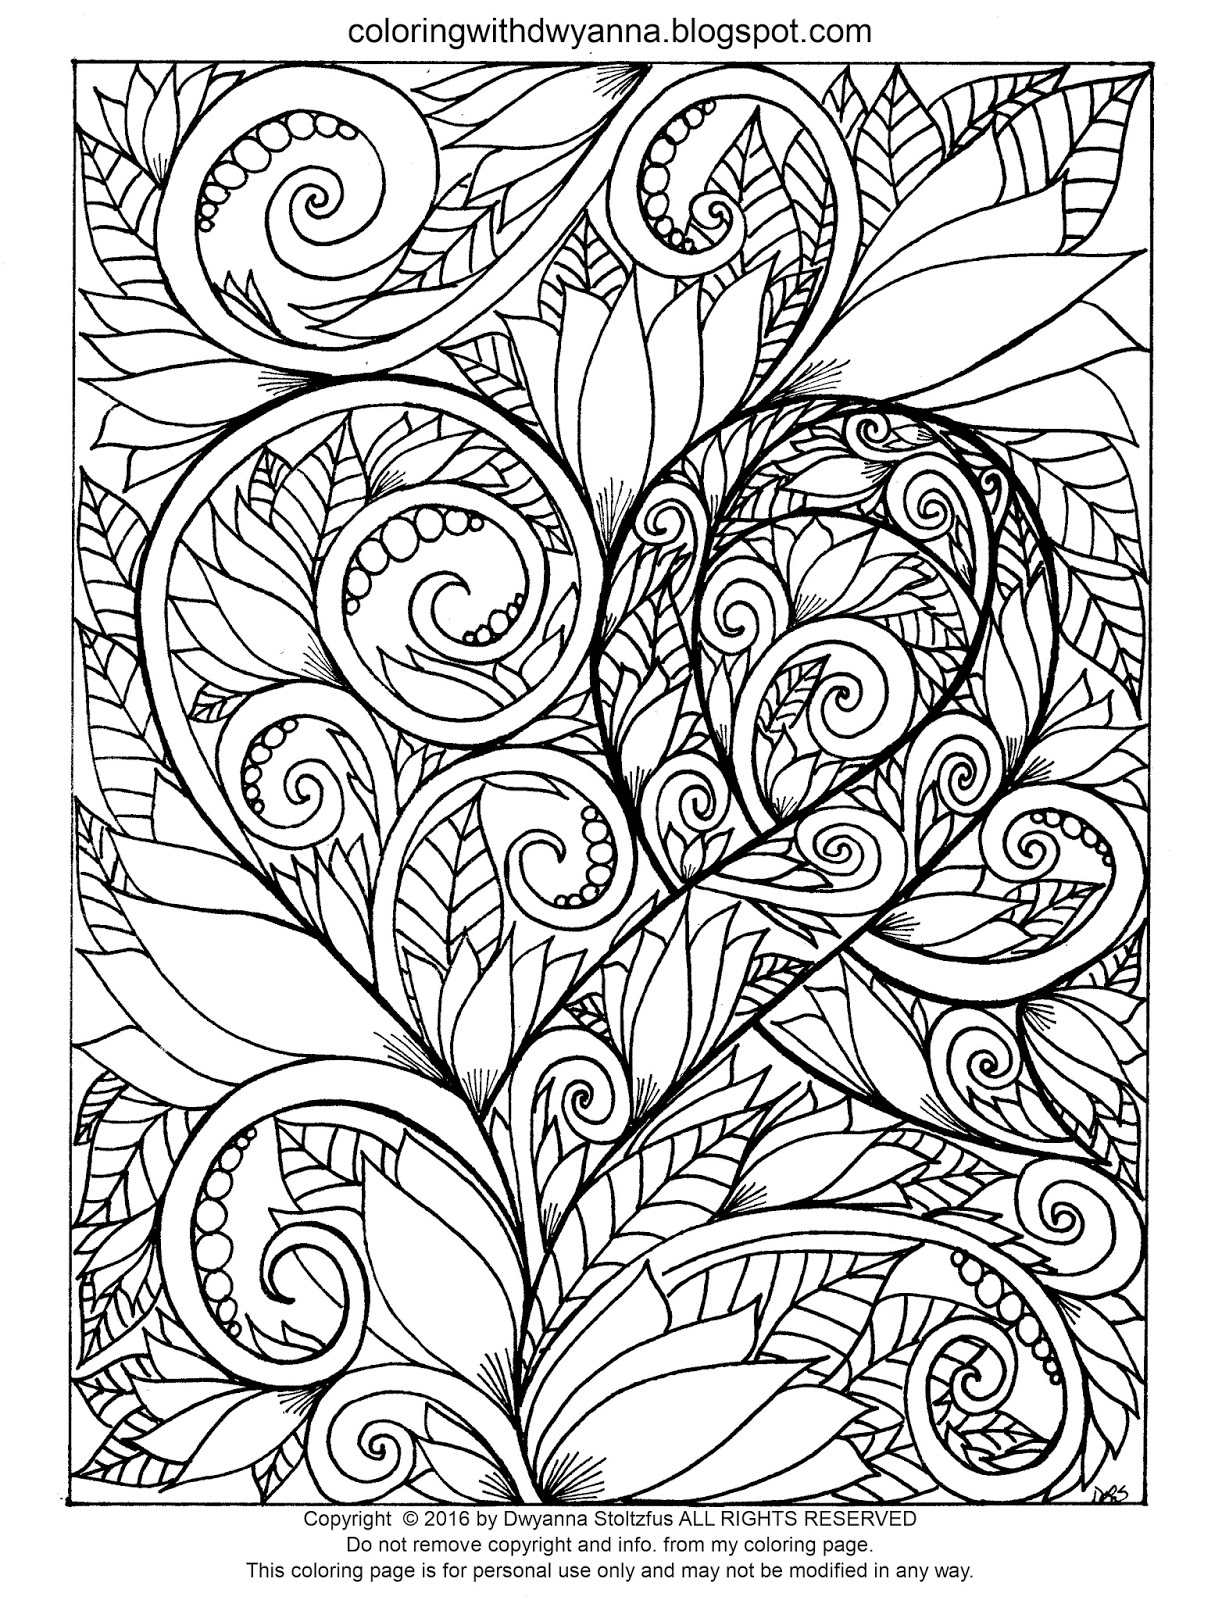 Free coloring pages awareness ribbon - The Free Coloring Pages I Post On This Website May Not Be Shared